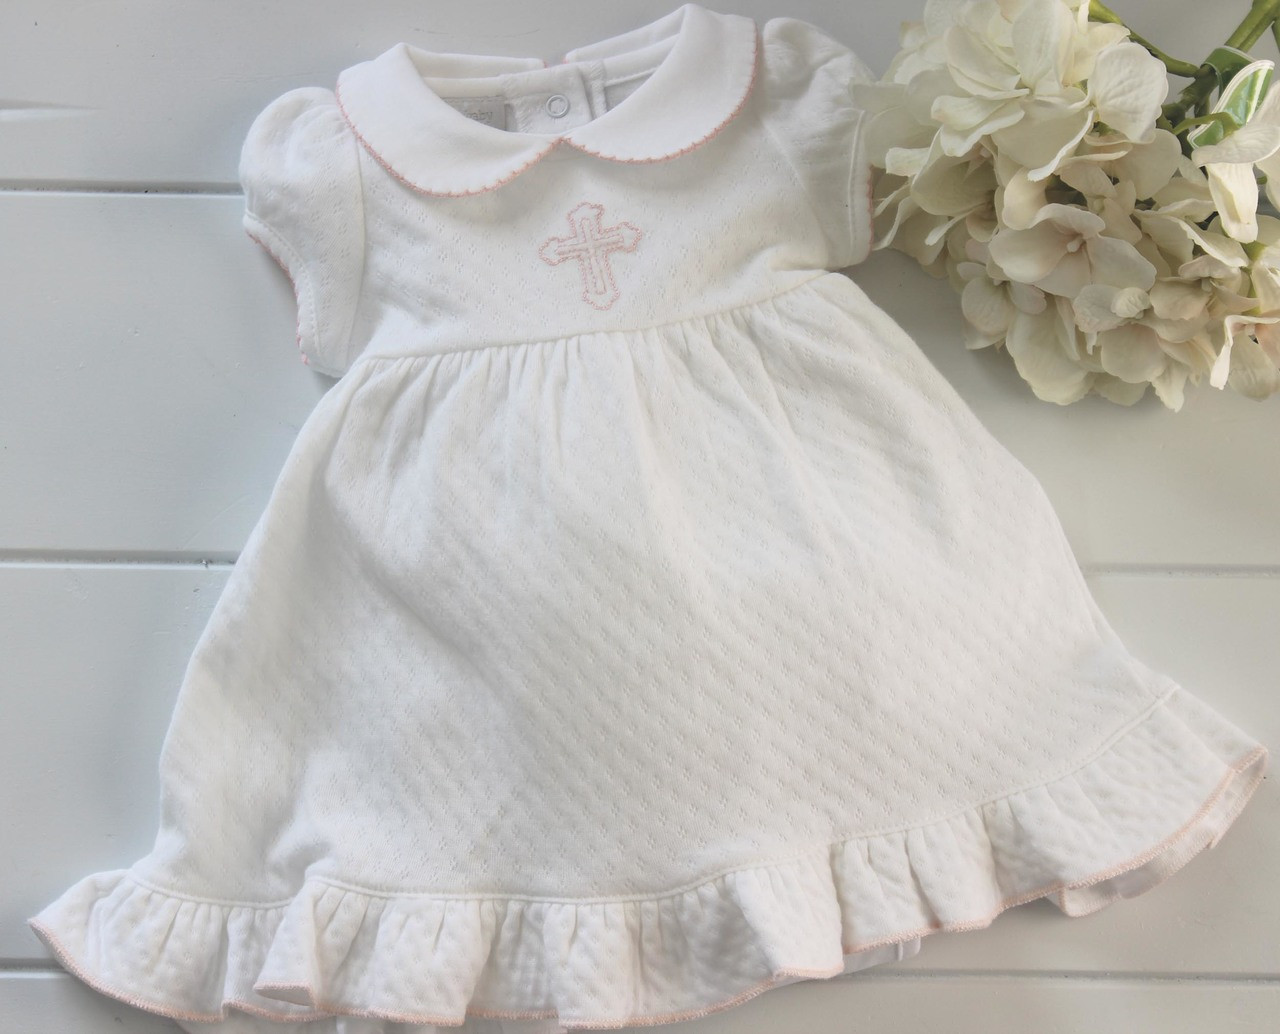 a598a912e64a ... Infant Girls White Cotton Dress Pink Cross Embroidery